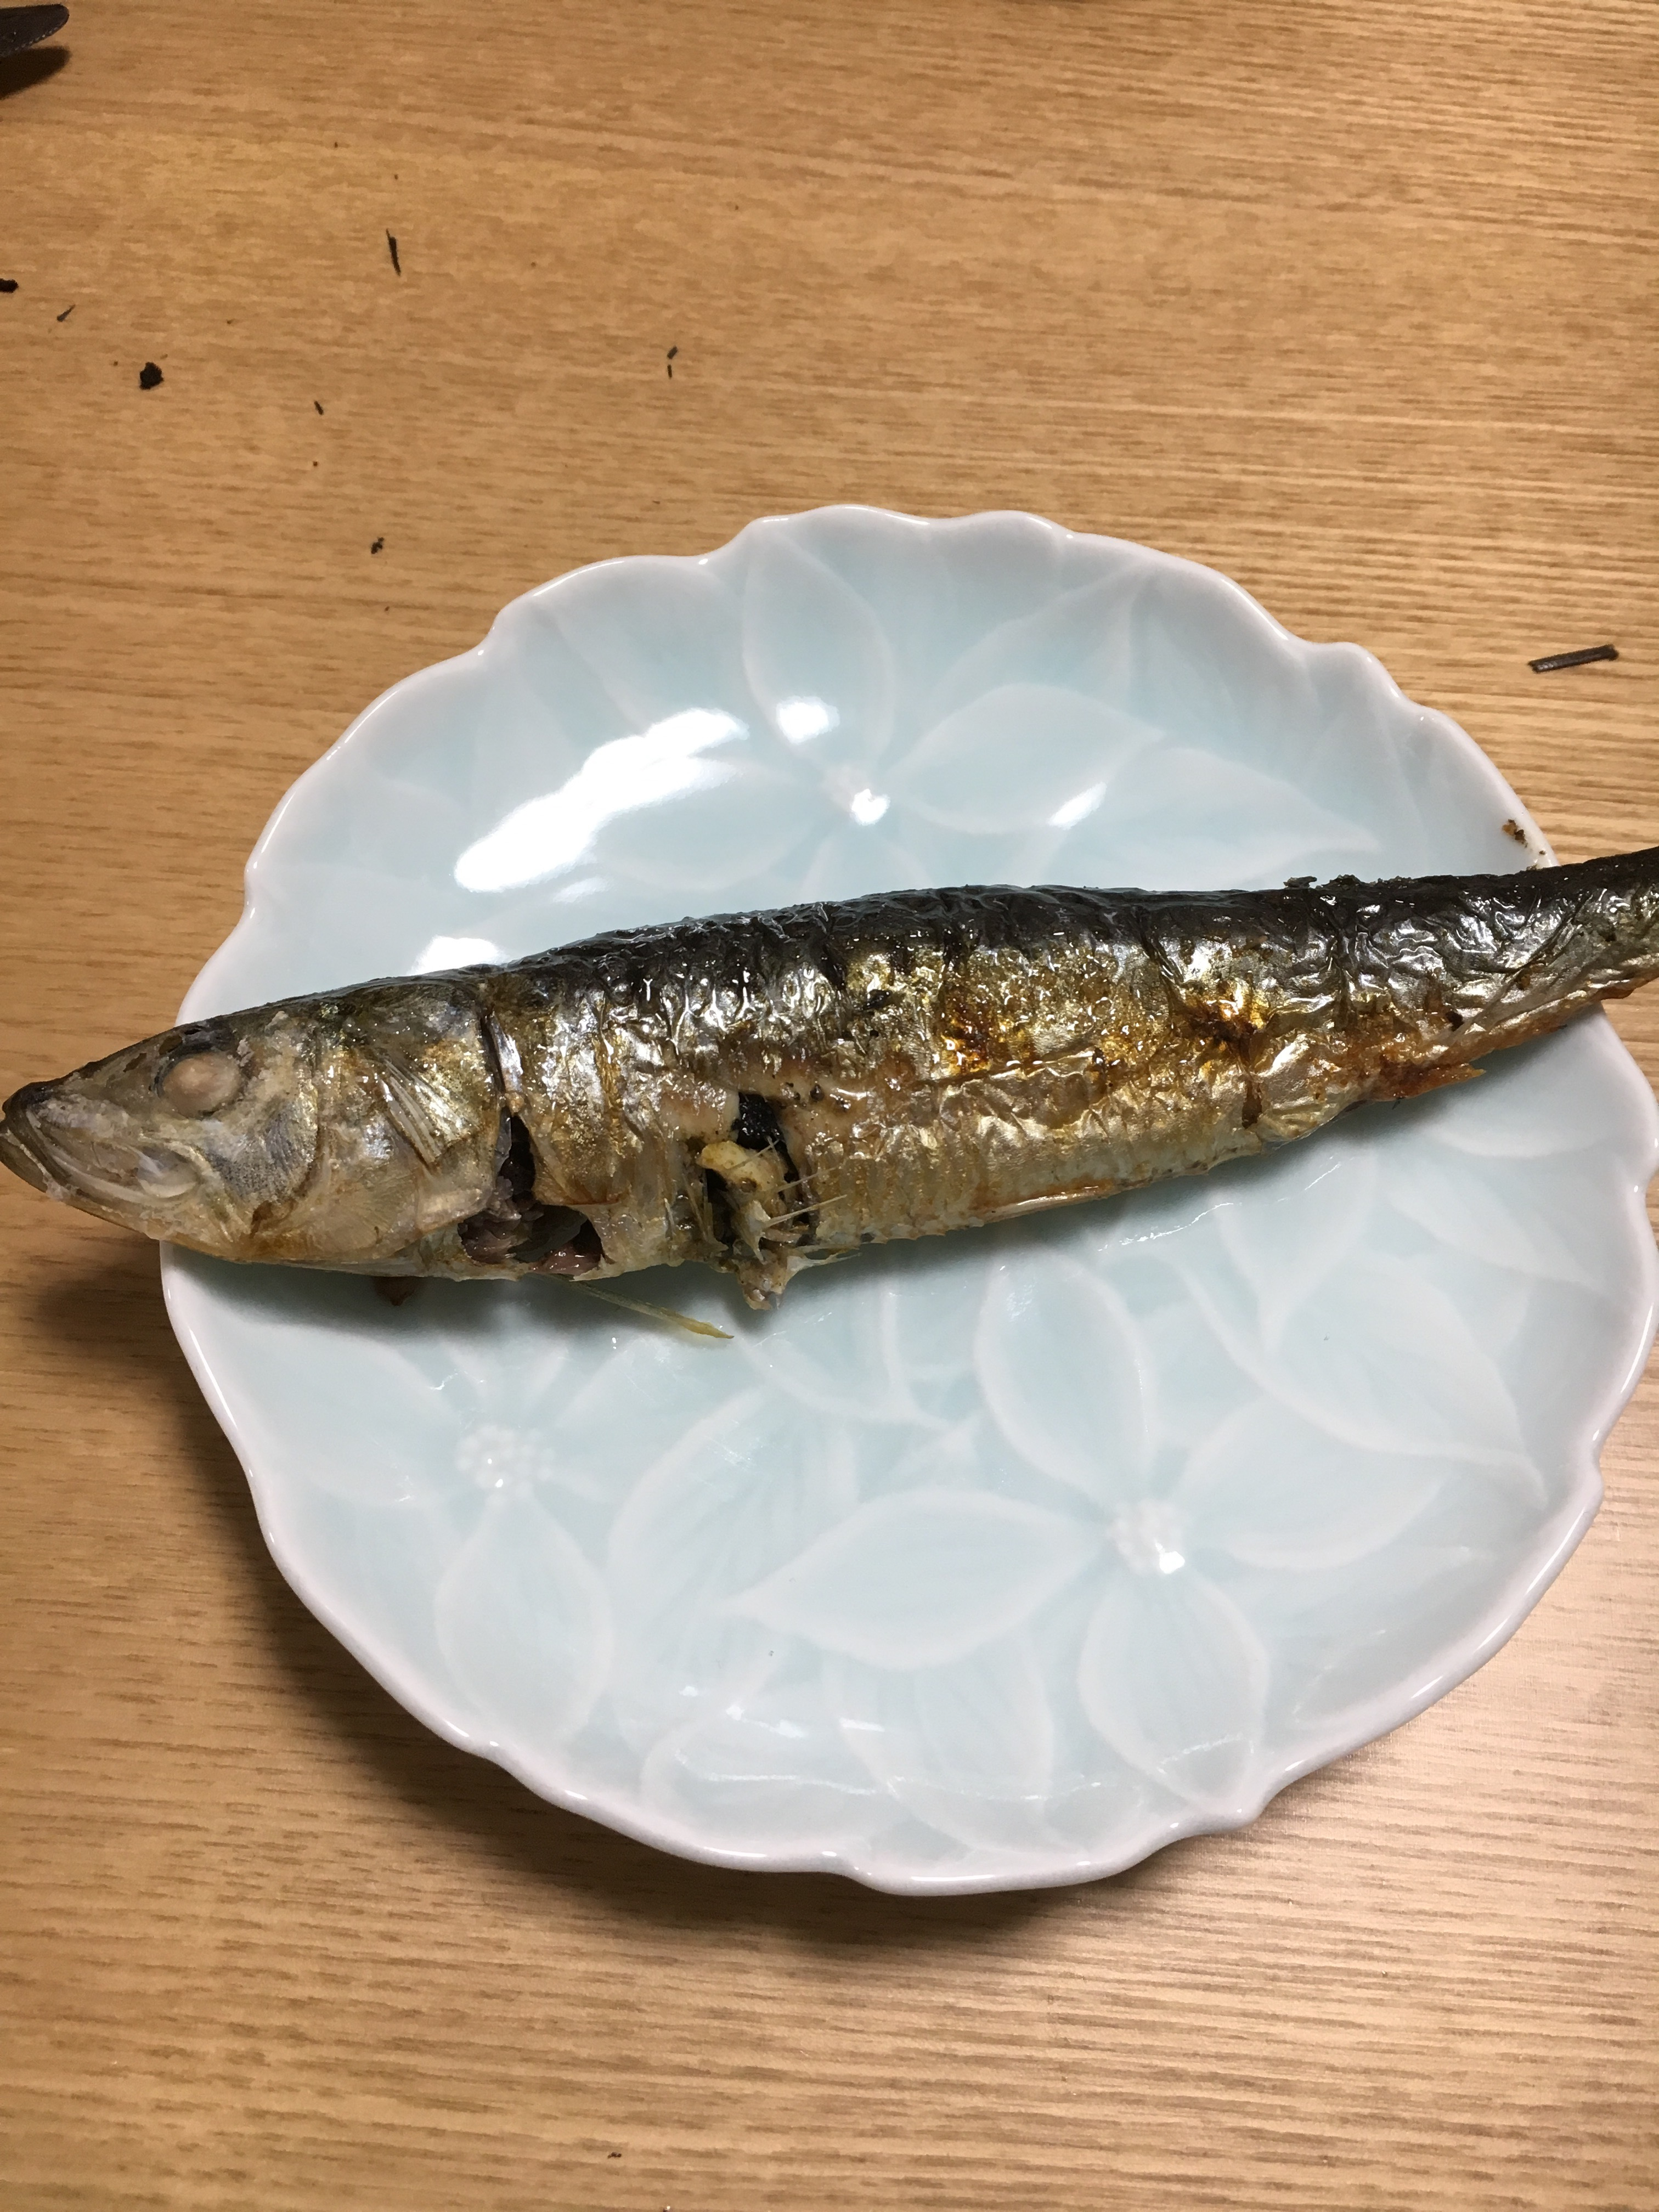 small grilled fish on a blue plate